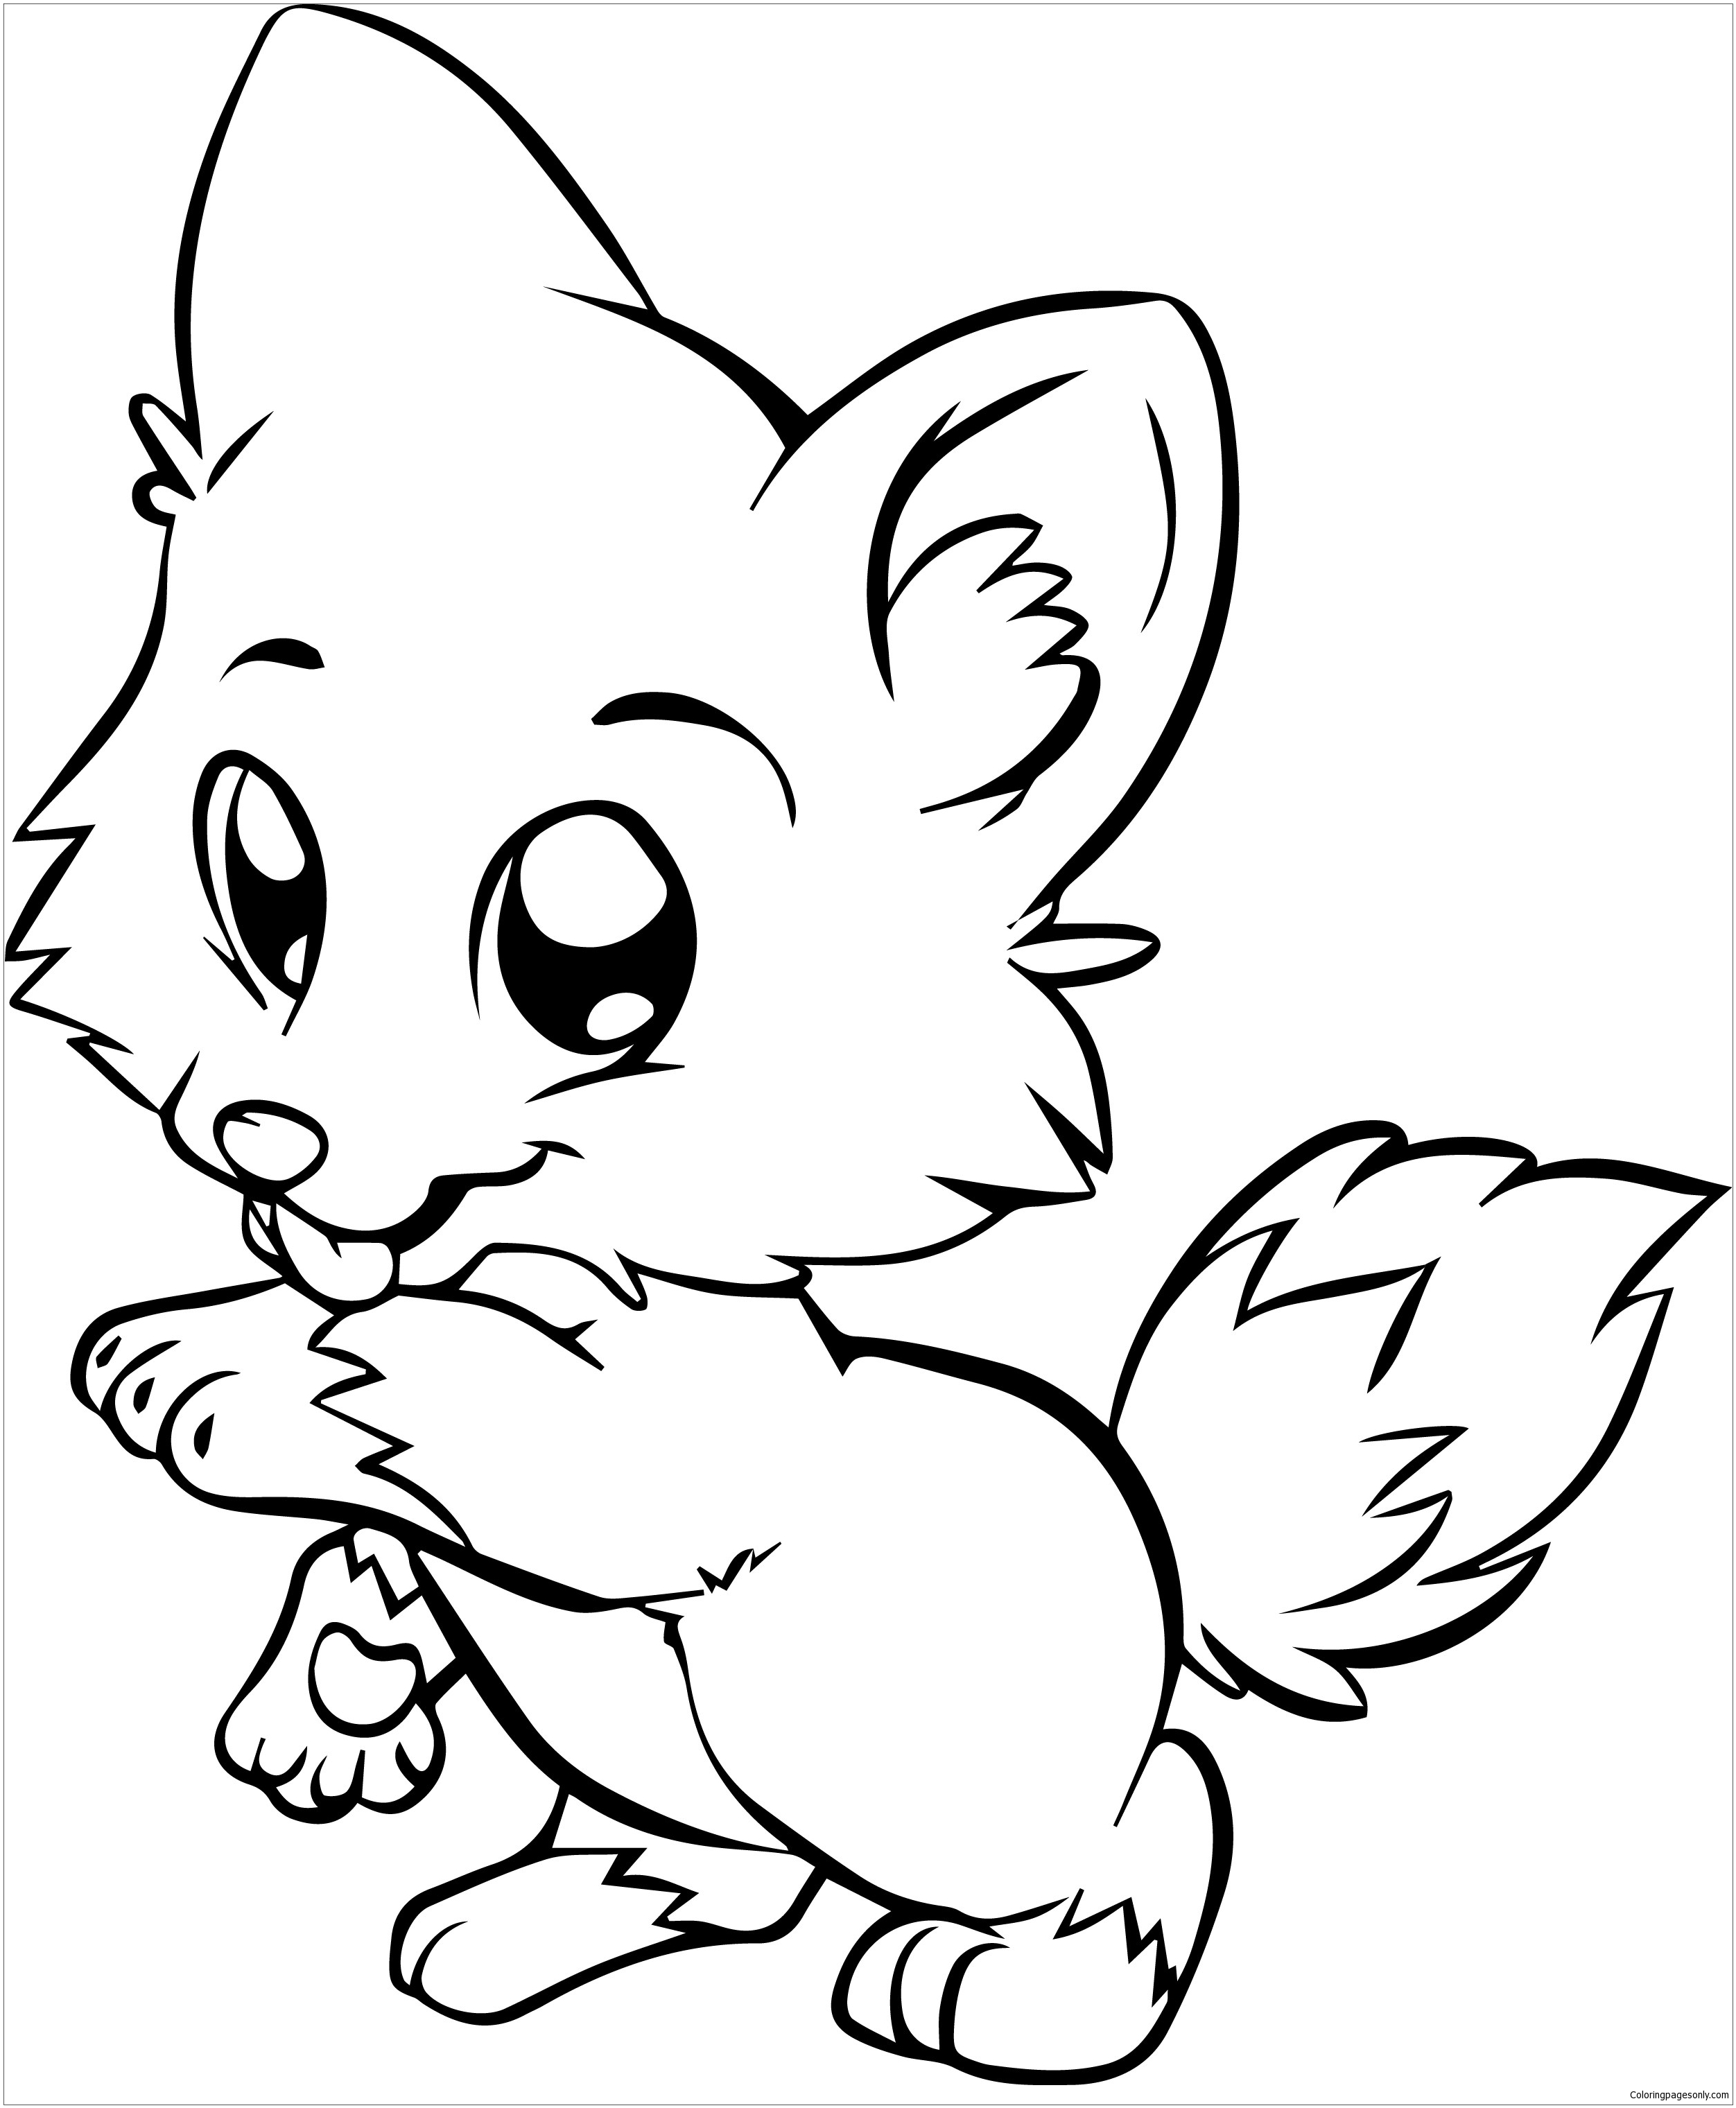 dog coloring pages - baby dog coloring page free coloring pages online